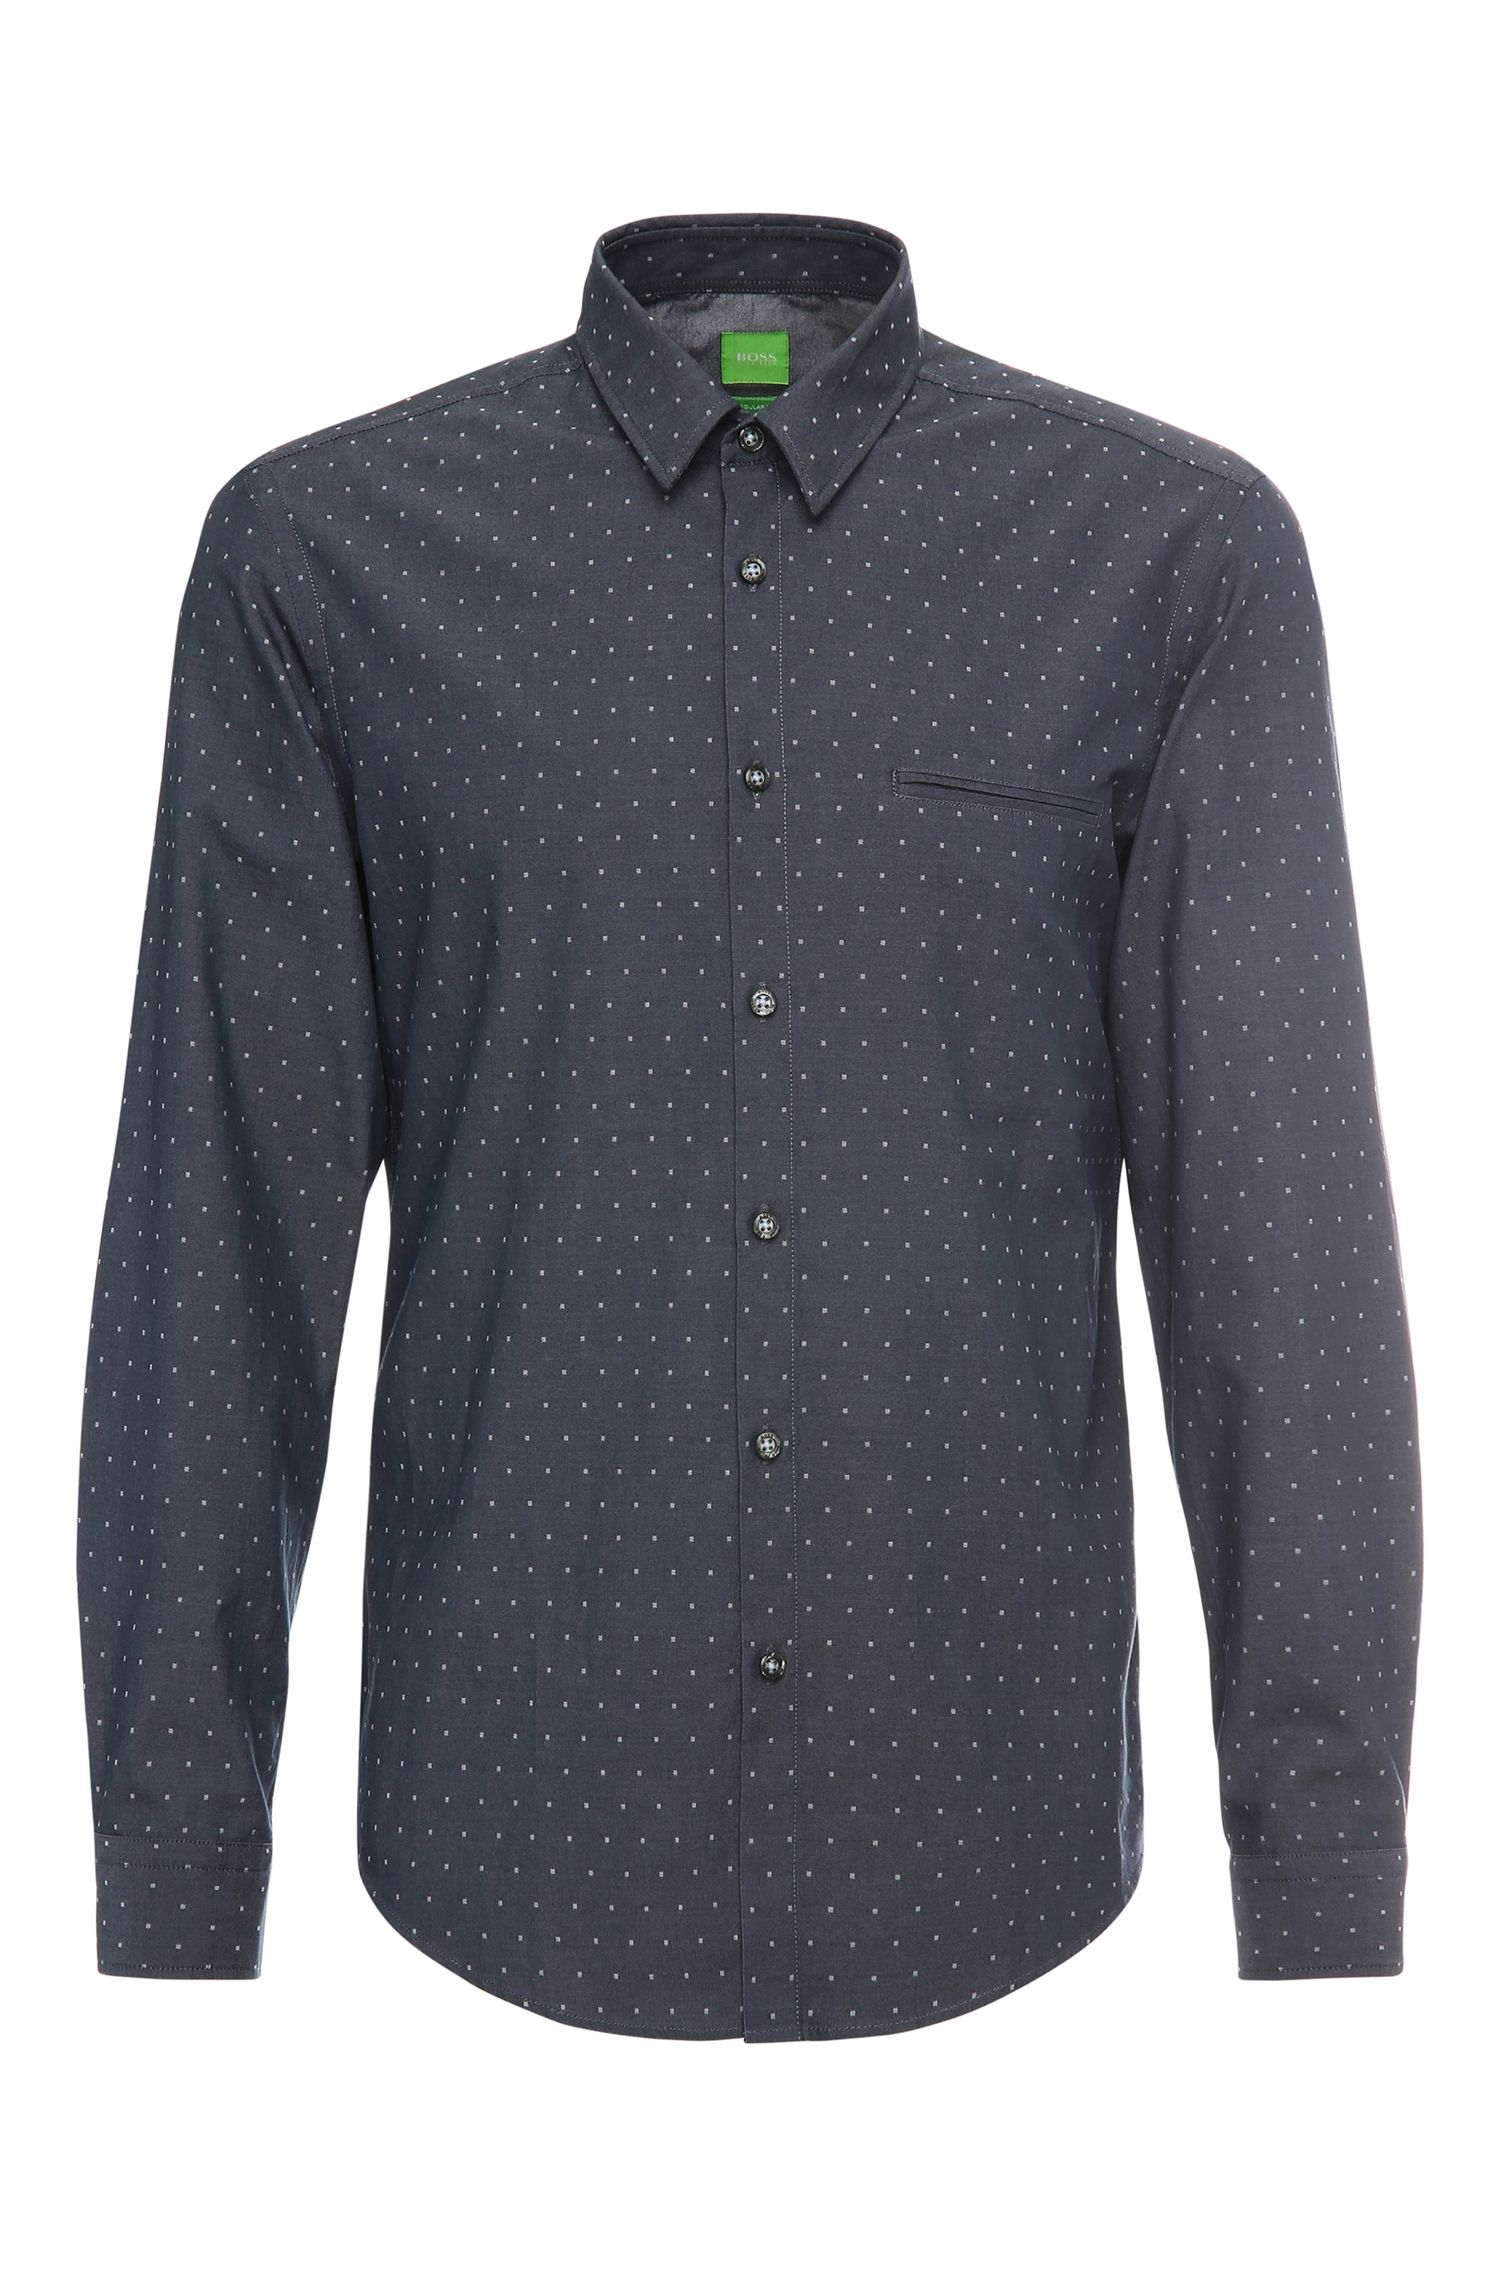 Cotton Dot Button Down Shirt, Regular Fit | C-Bacchis